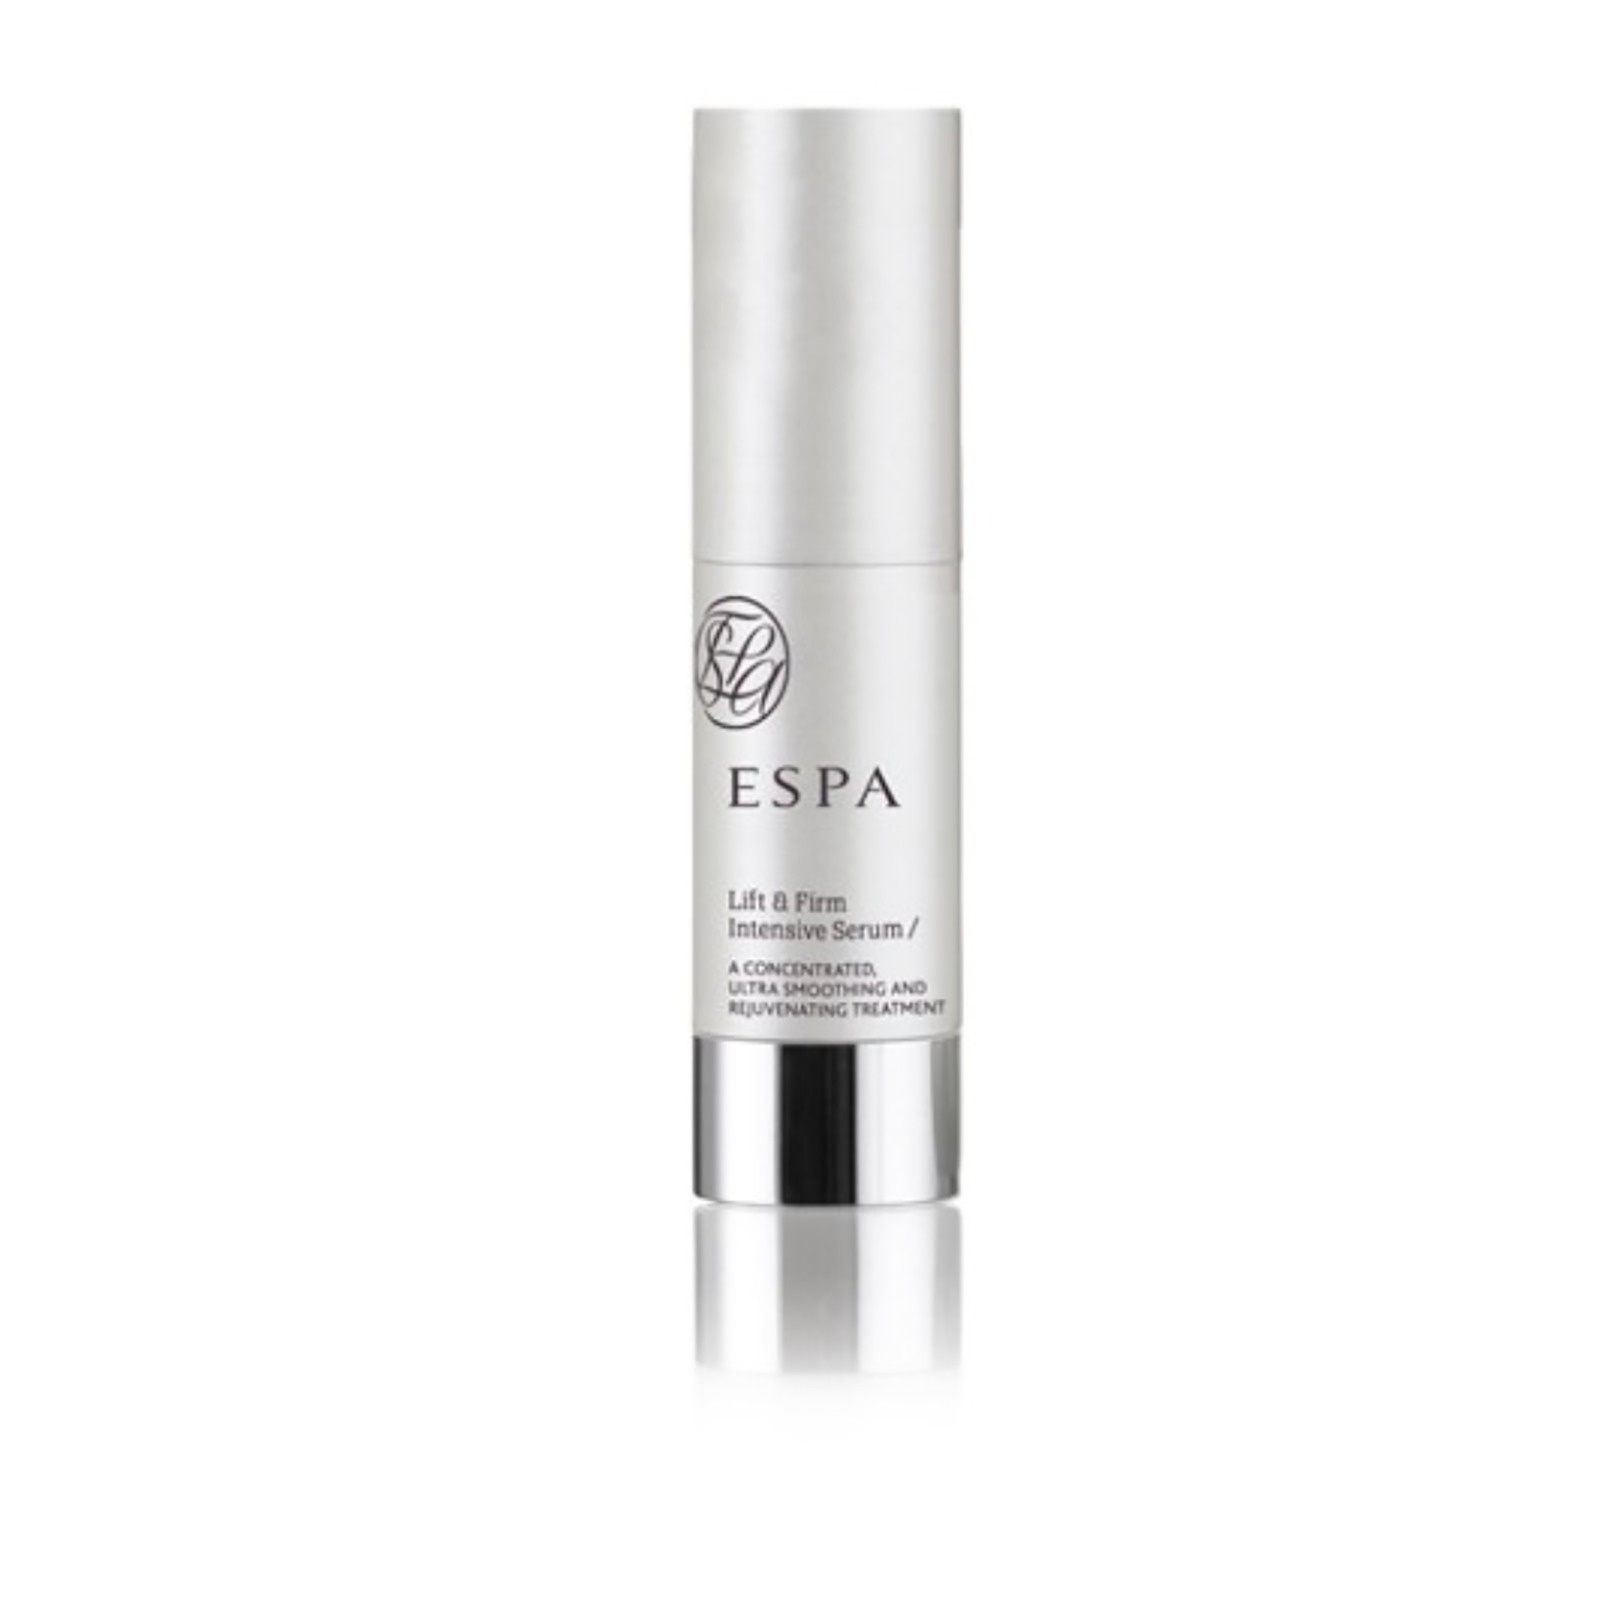 ESPA Lift & Firm Intensive Serum (25ml)